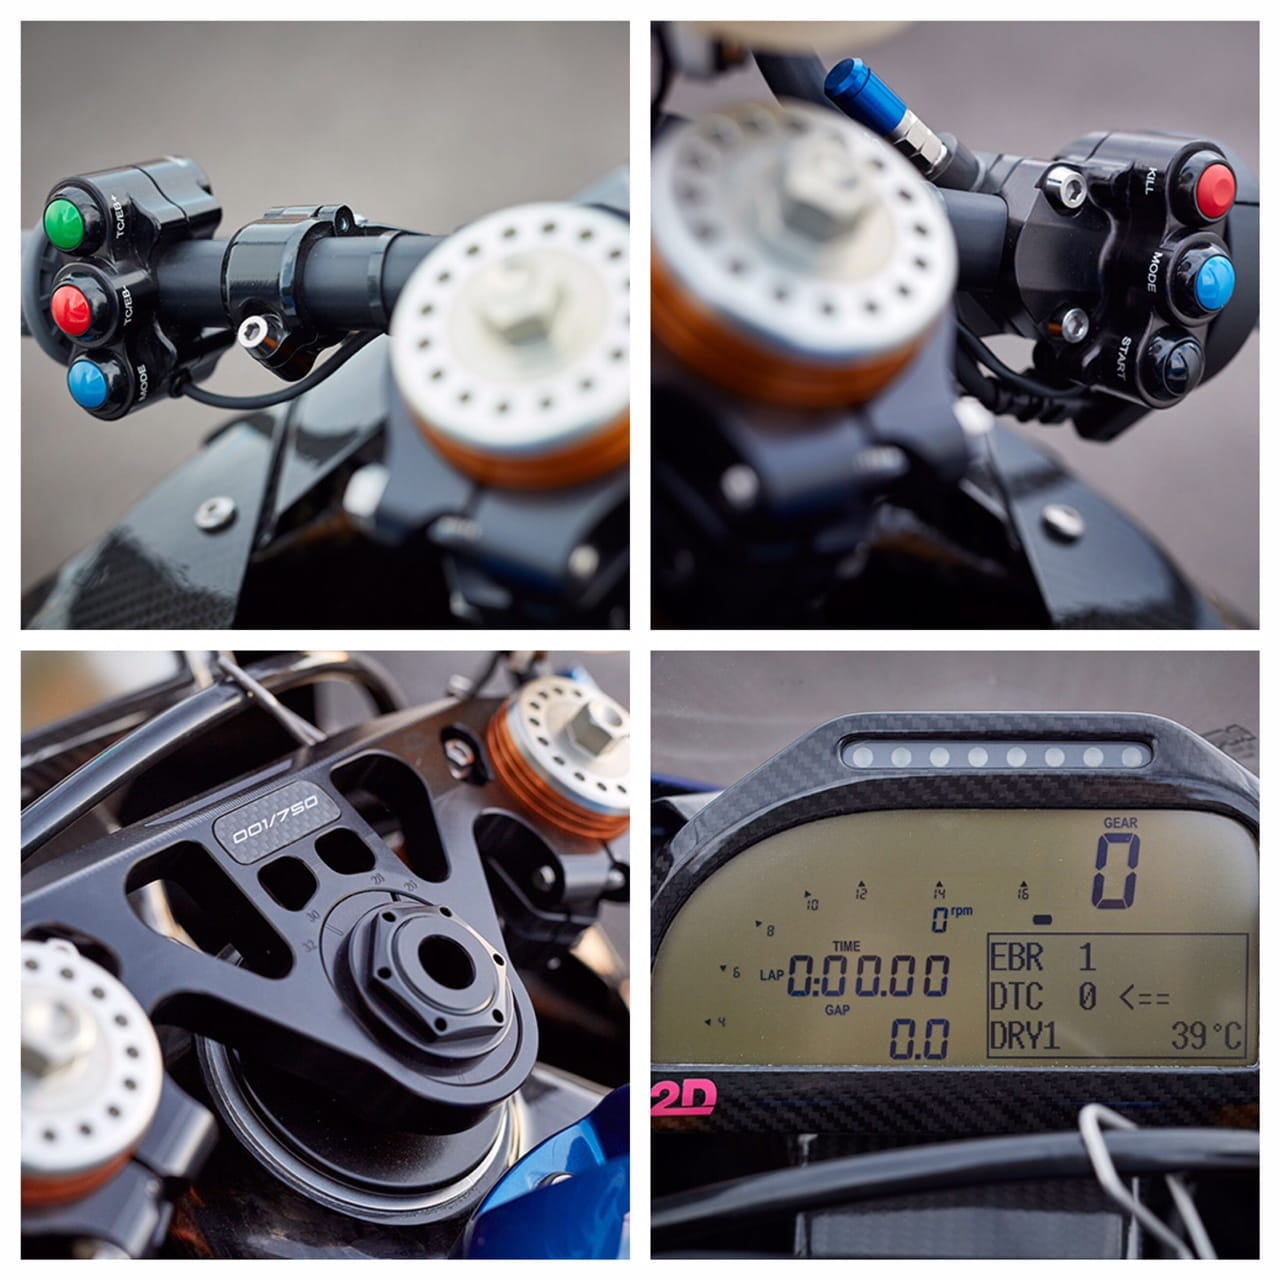 BMW HP4 RACE dashboard and handlebar detail